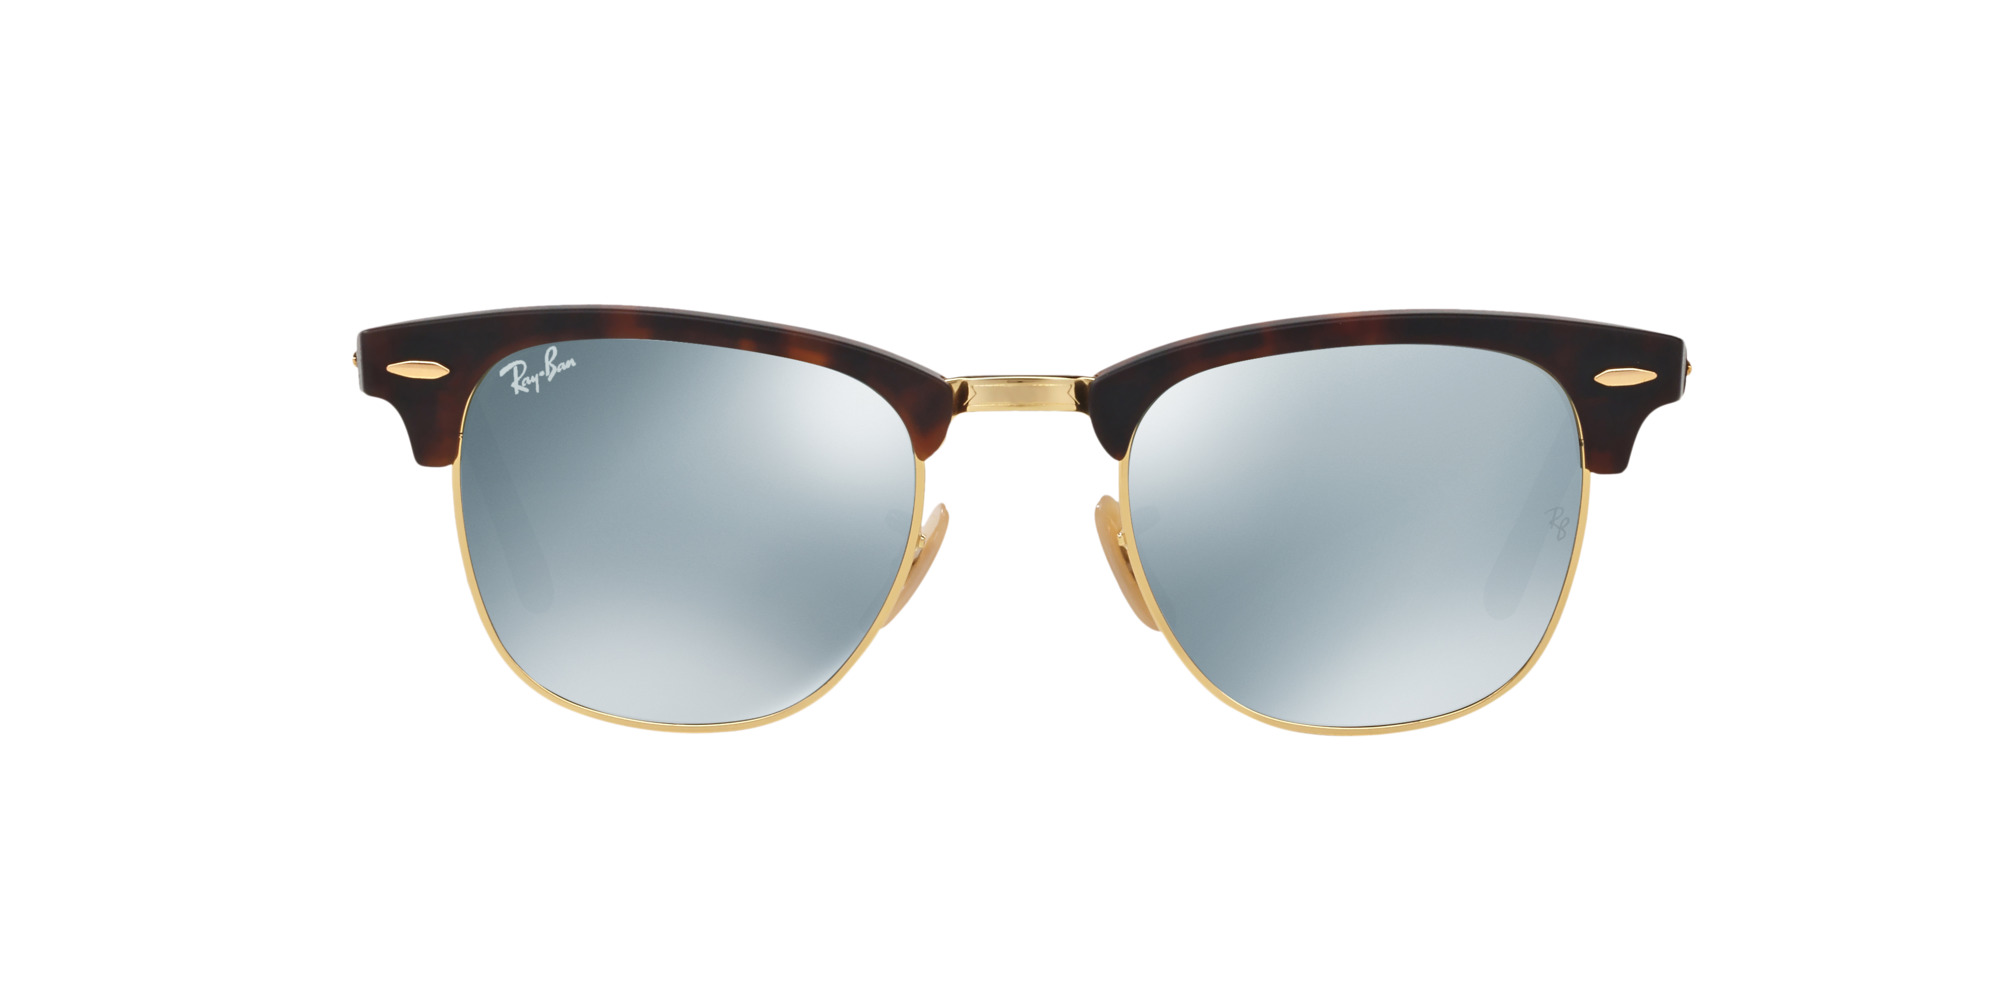 RAY-BAN CLUBMASTER RB 3016 114530 51mm.-360